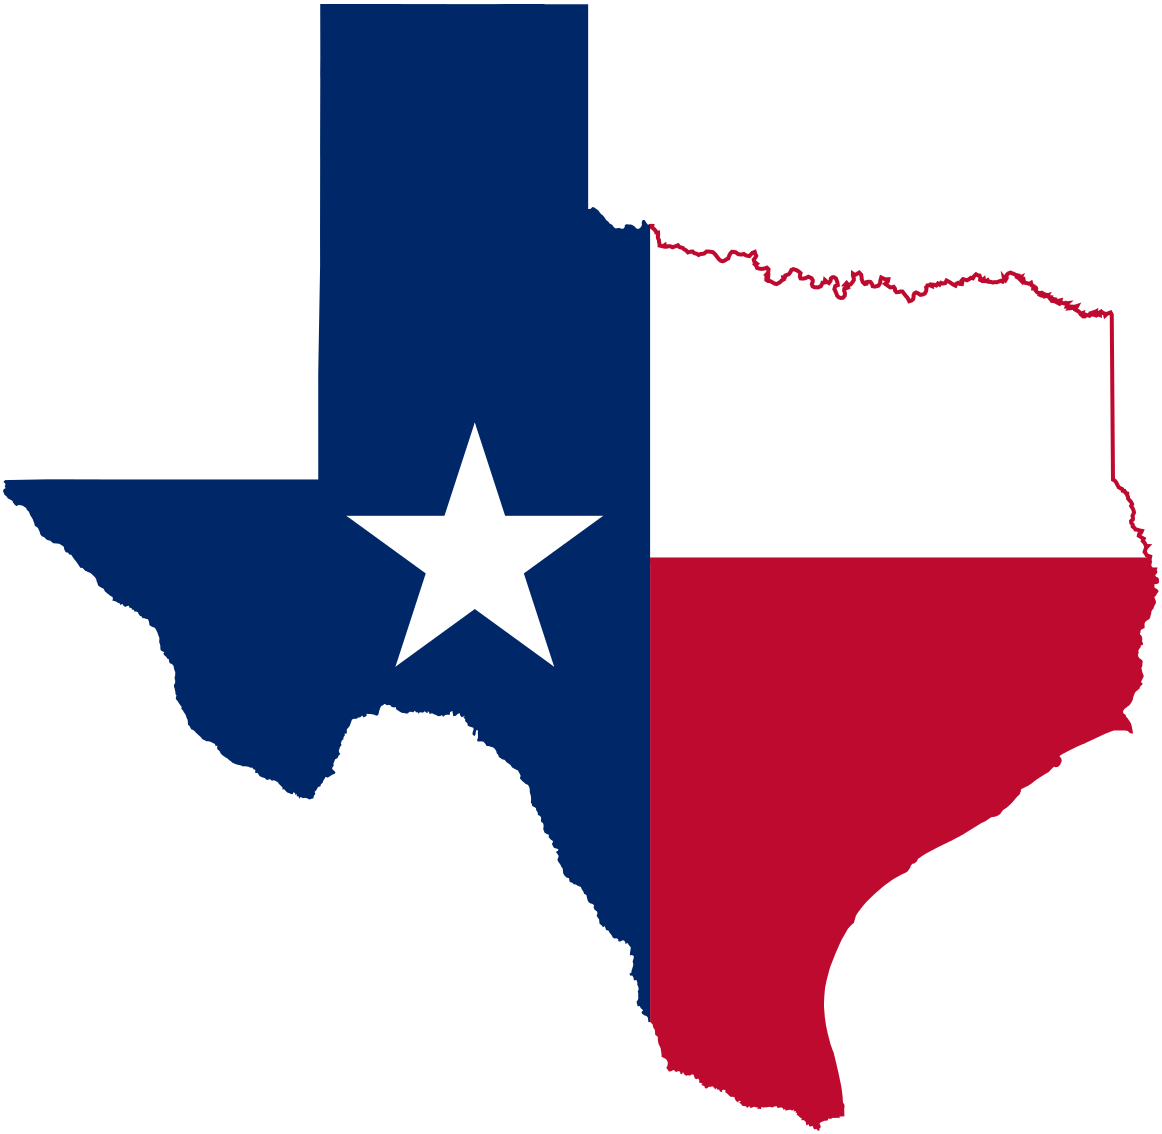 clipart library stock Map drawing bnhspine com. Texas shape clipart